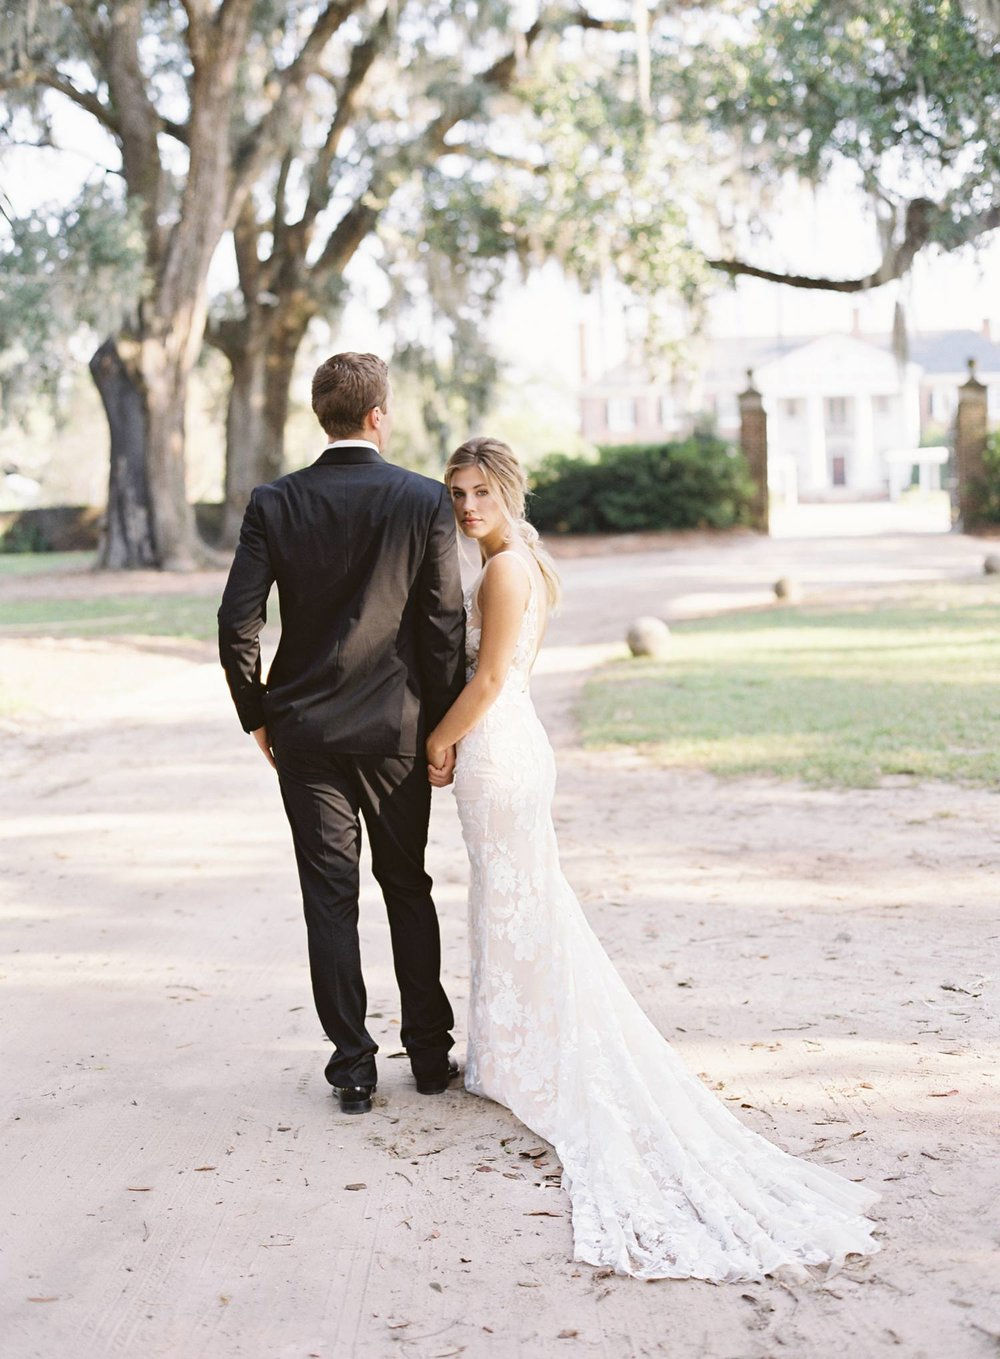 boonehallplantation_wedding_8.jpg